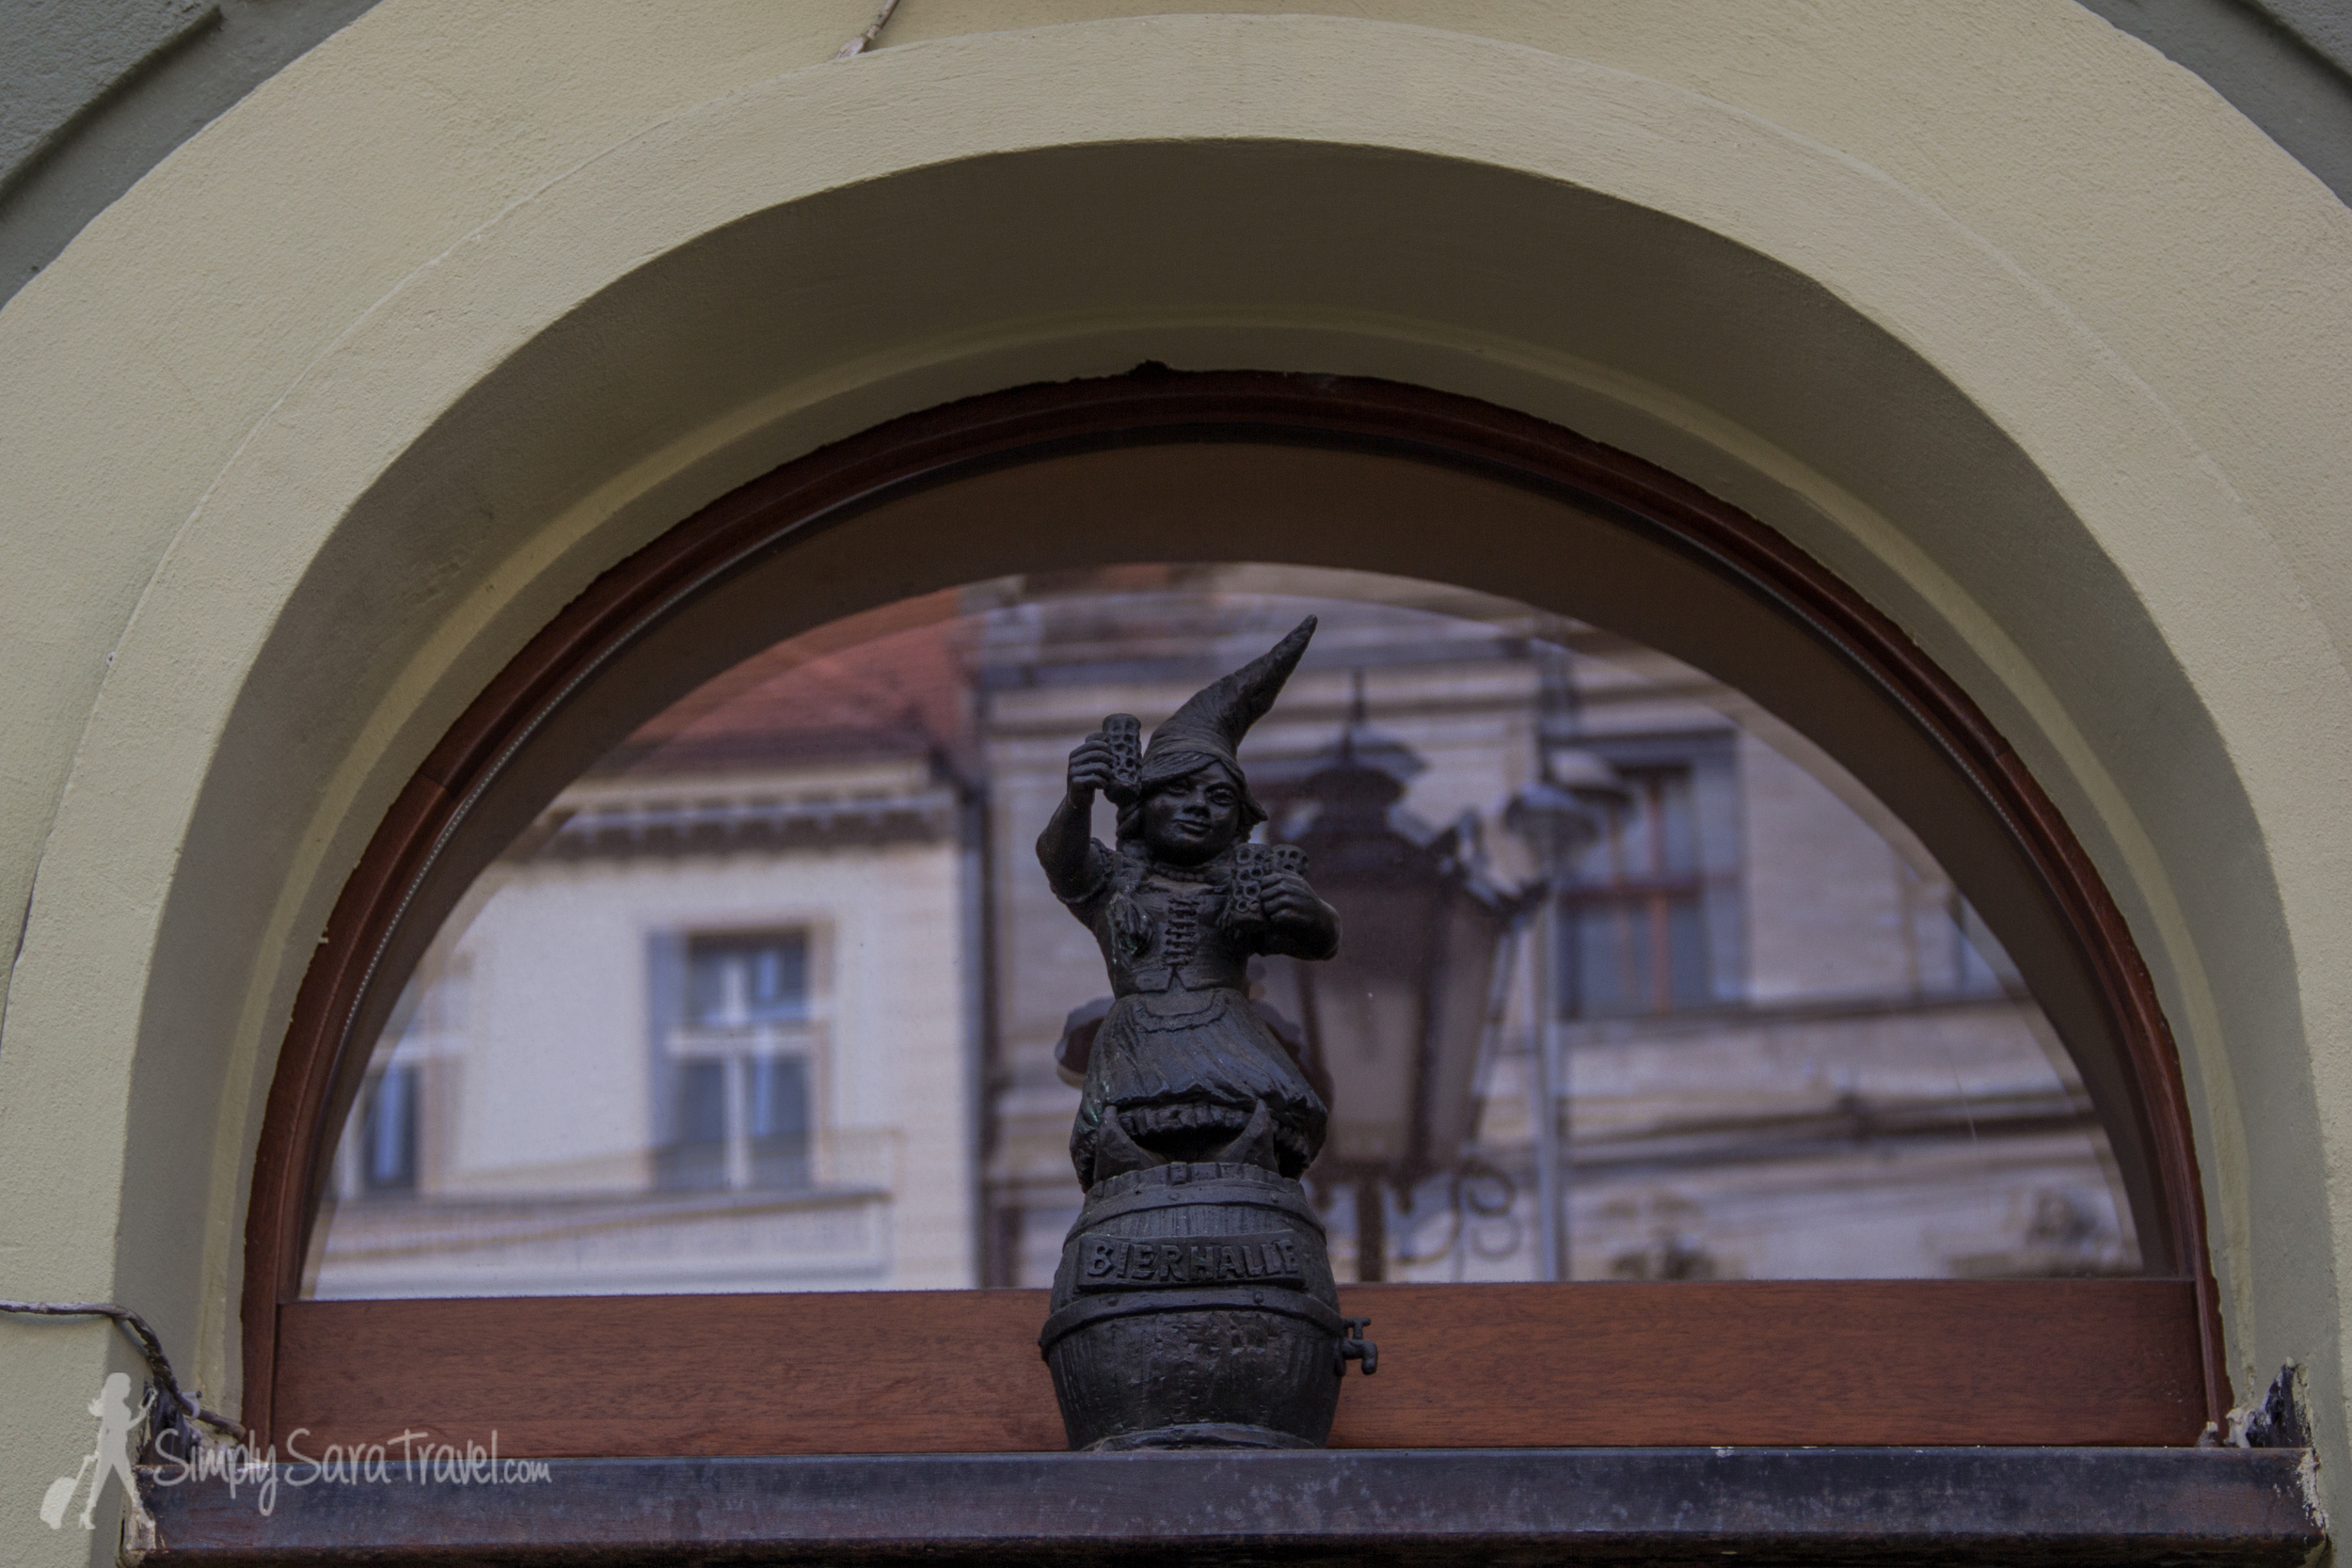 You can't forget to look up in Wroclaw! Found this one over the door of a brewery.